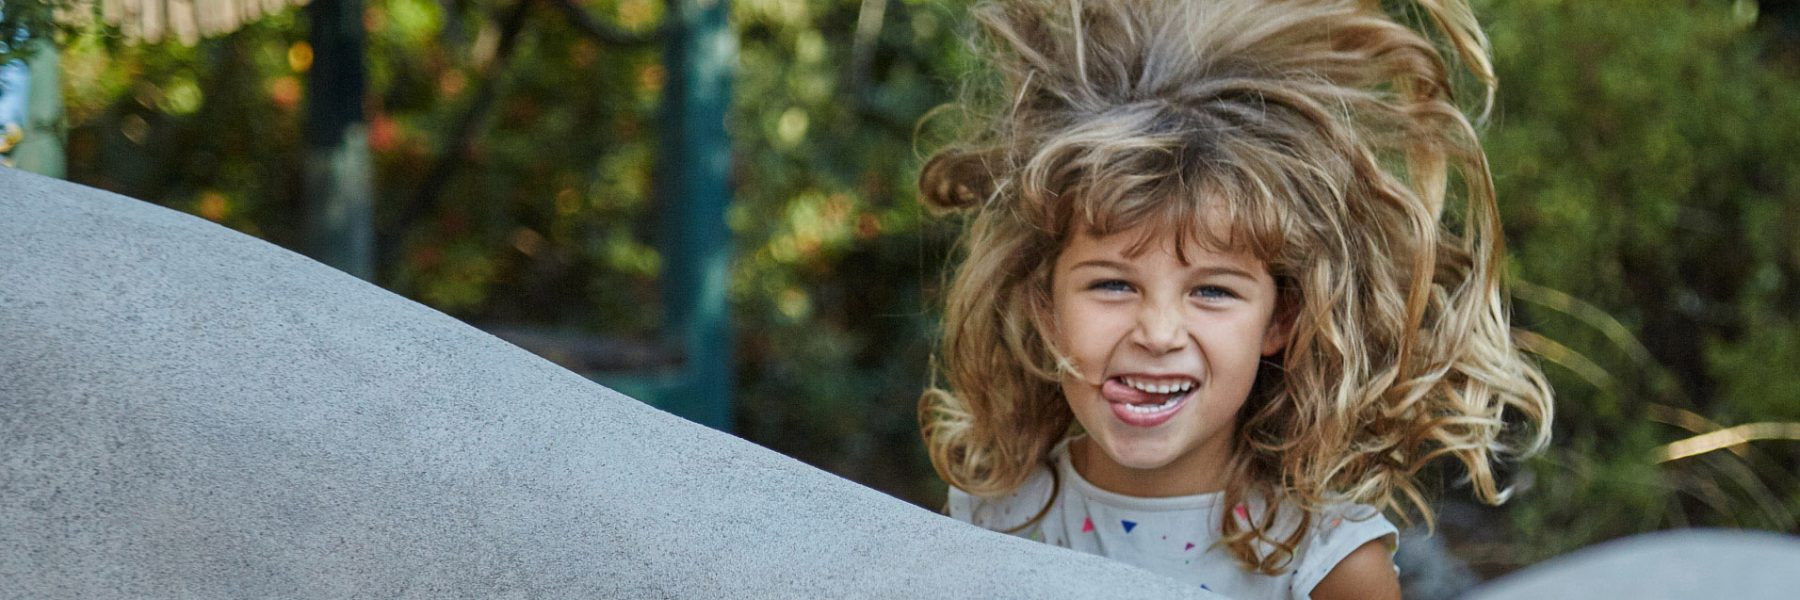 A photo of a young girl with a wild hair and a big smile.